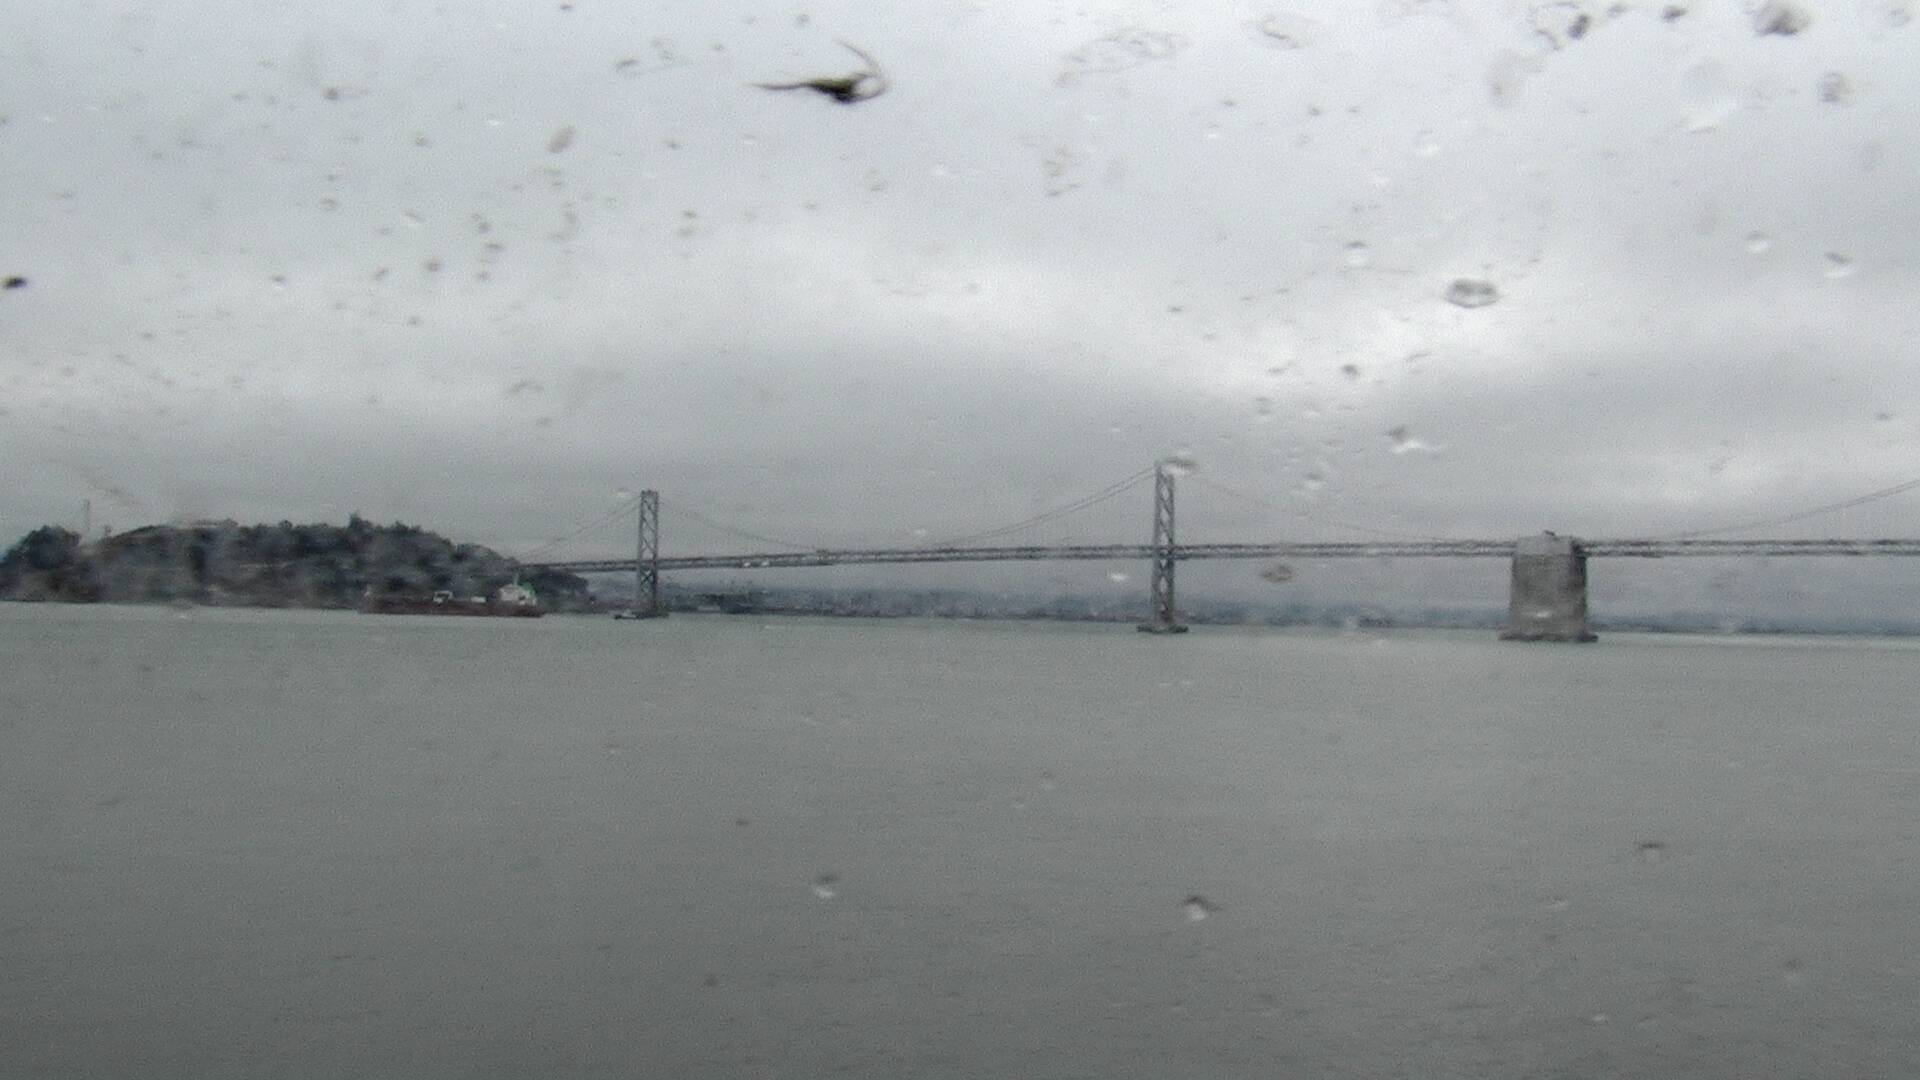 Webcam image from Pier 15